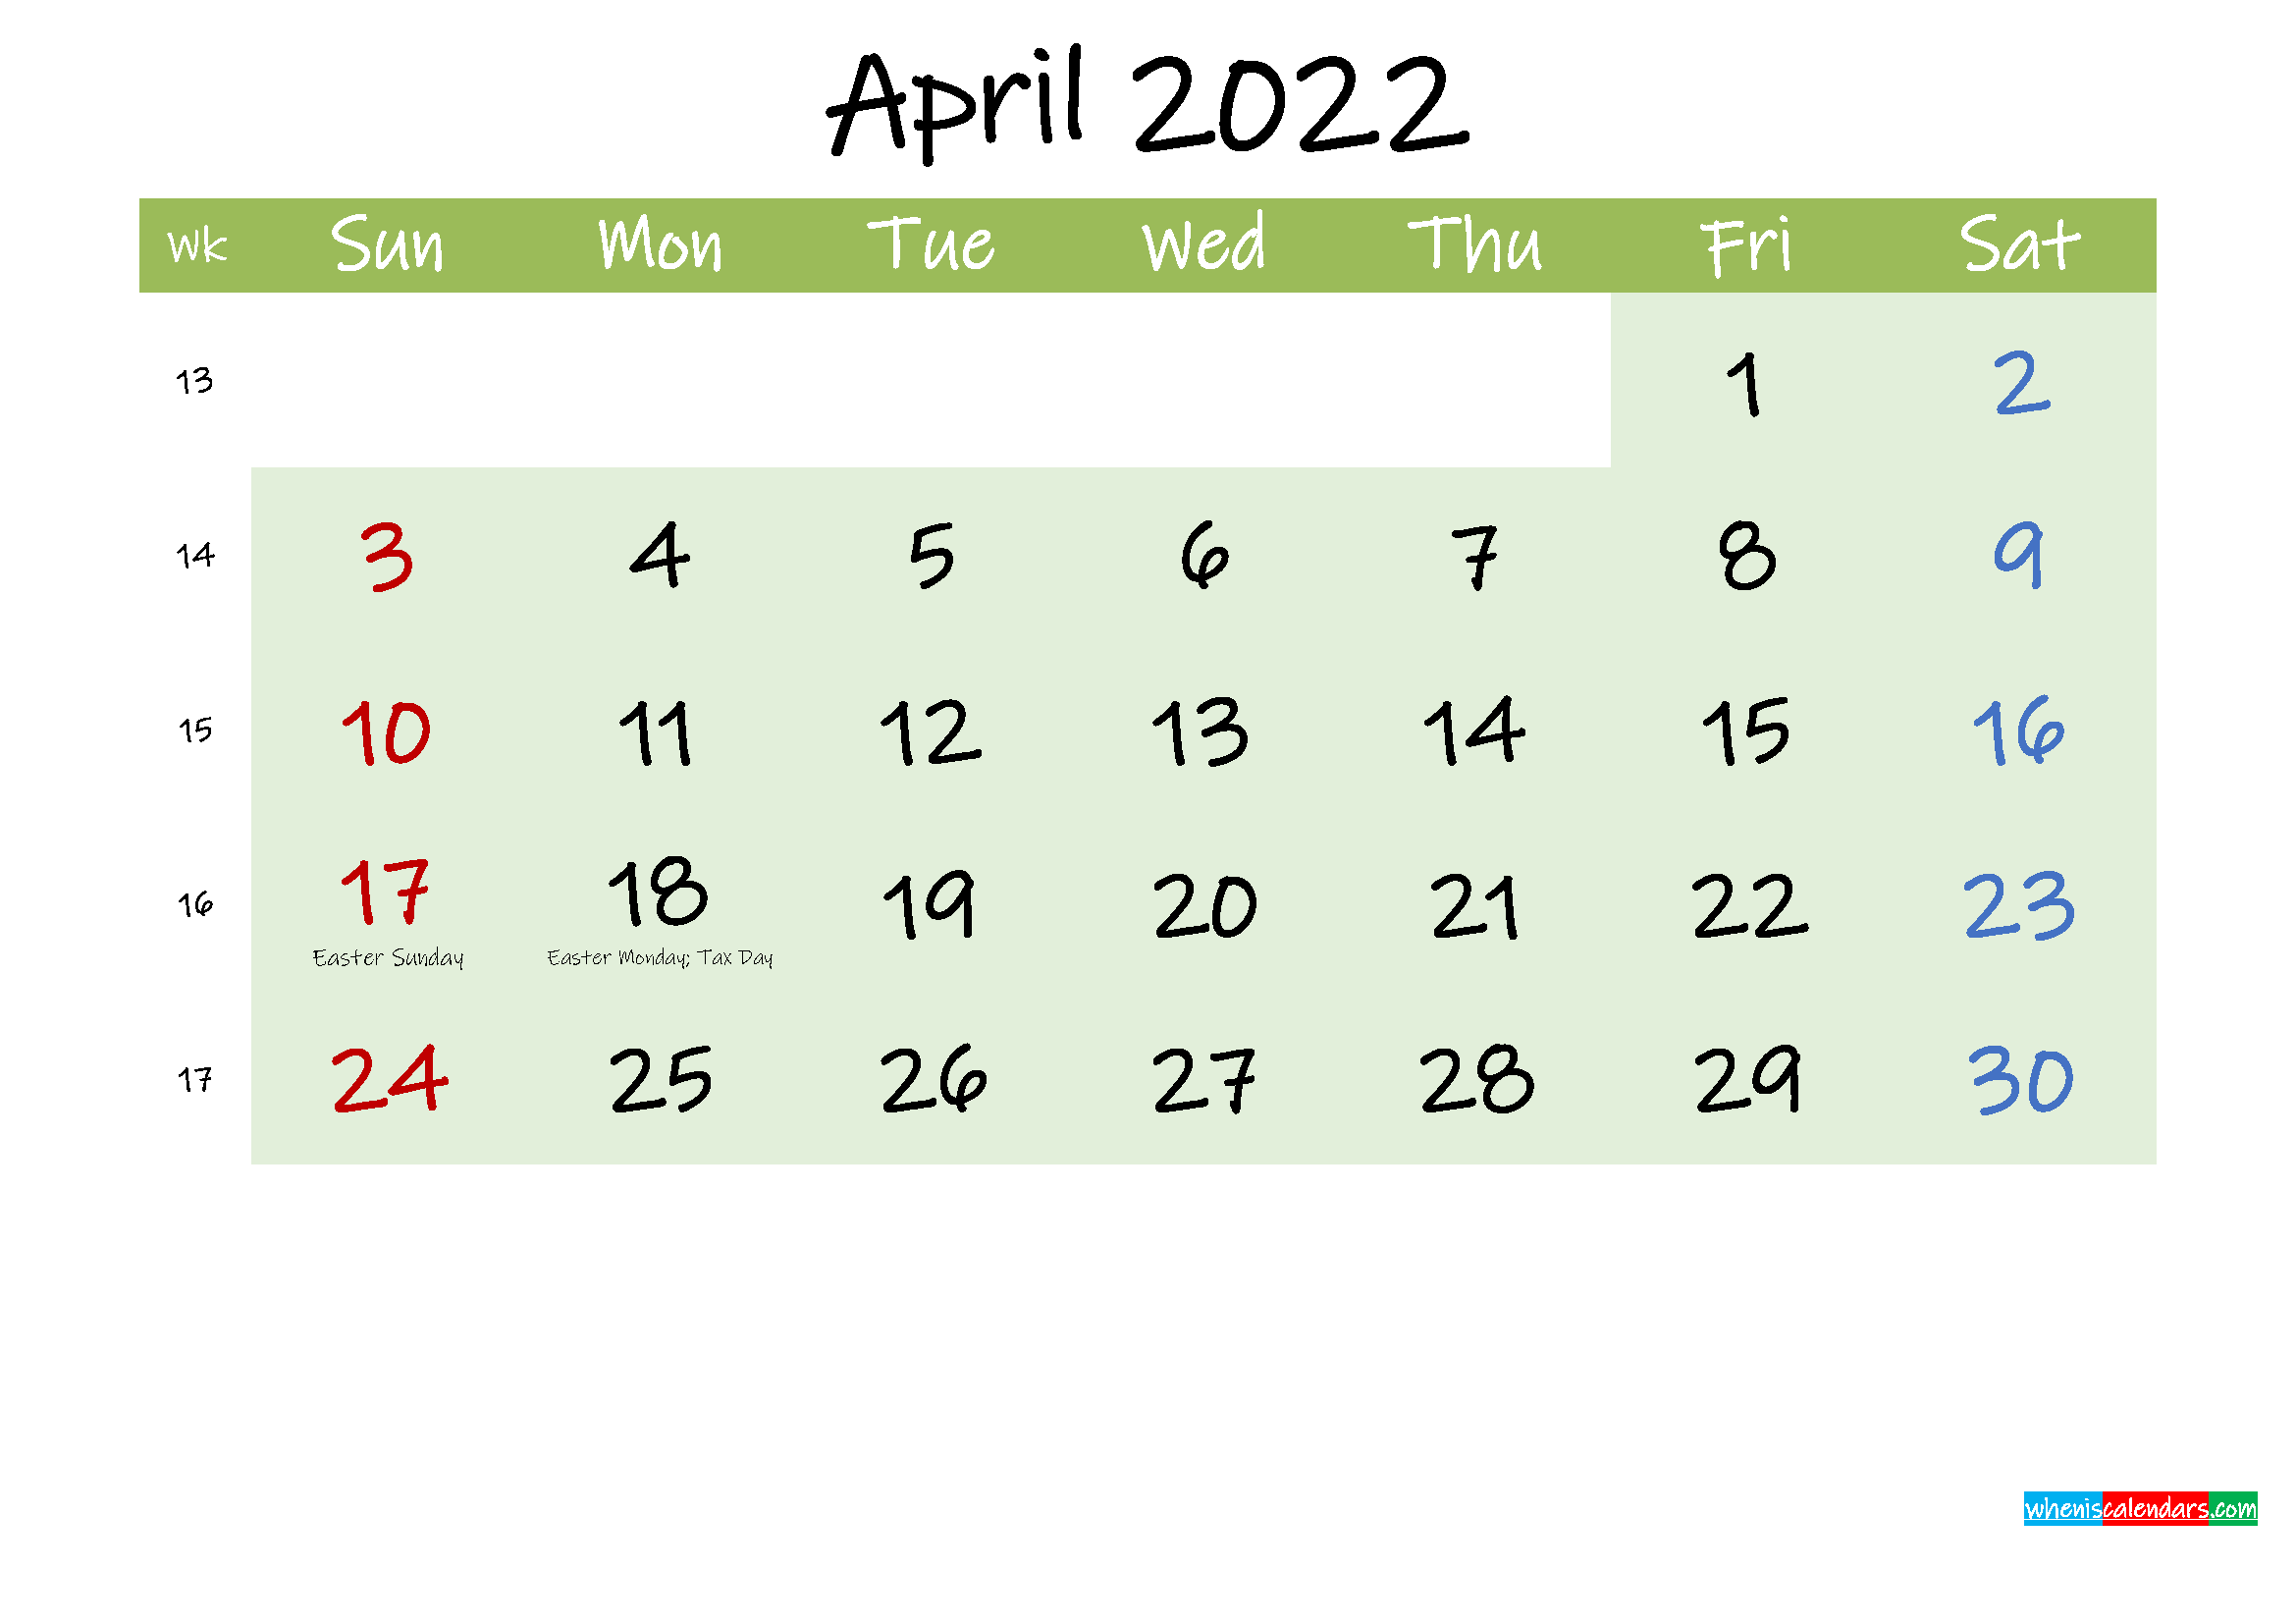 April 2022 Calendar with Holidays Printable